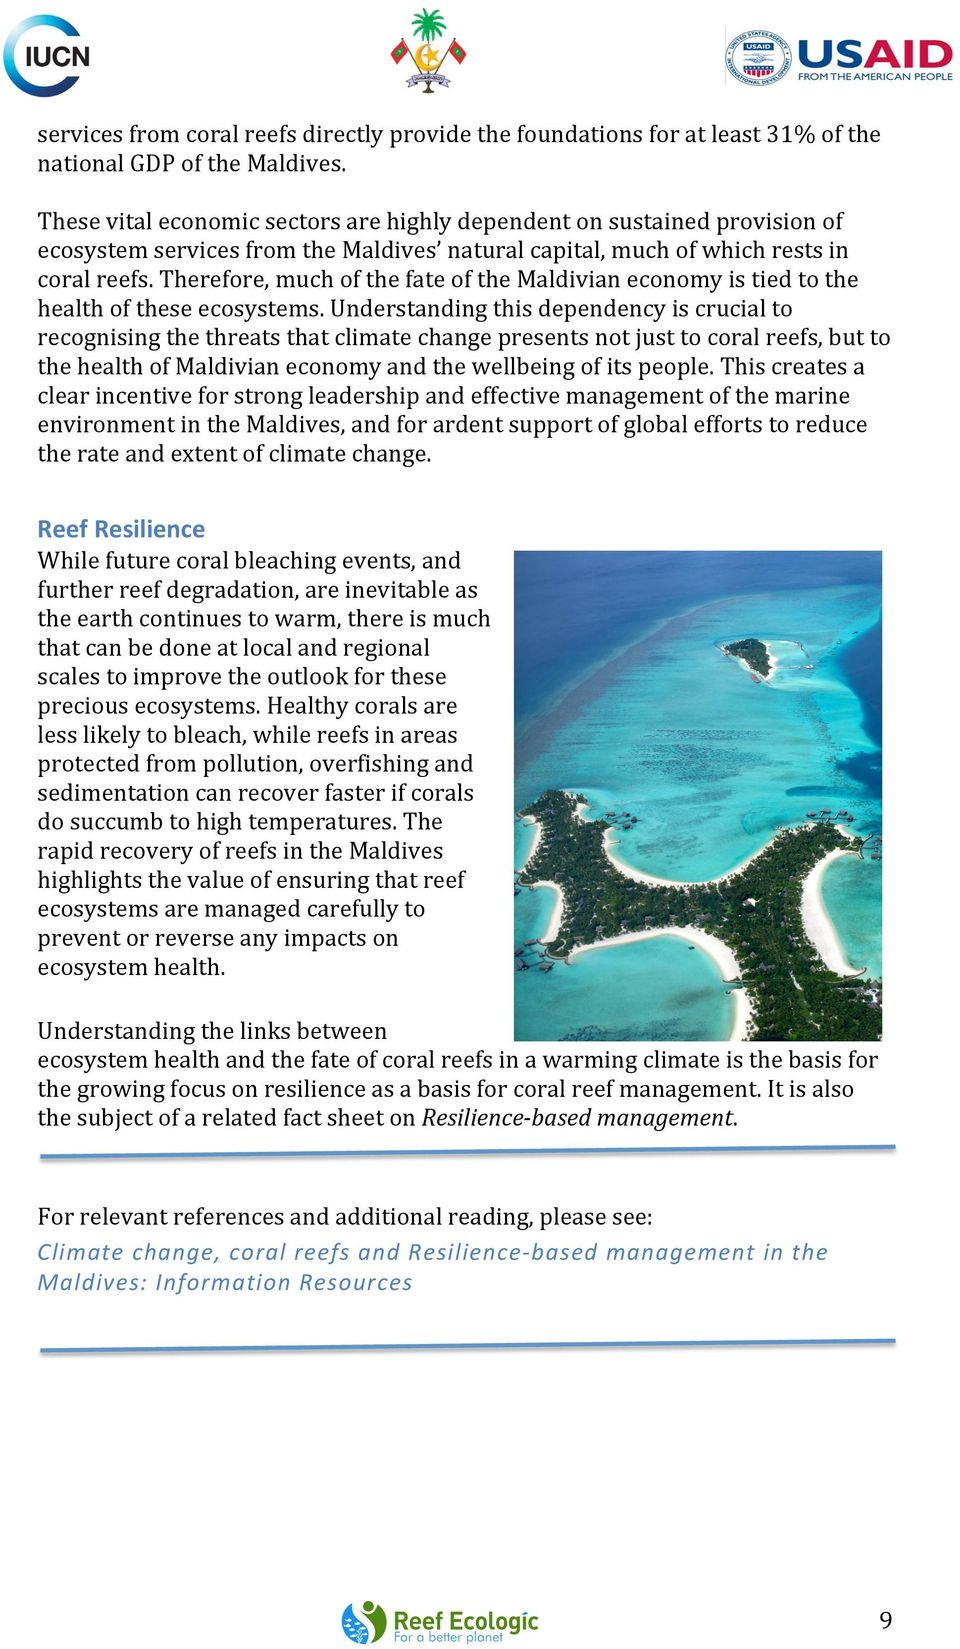 Therefore, much of the fate of the Maldivian economy is tied to the health of these ecosystems.